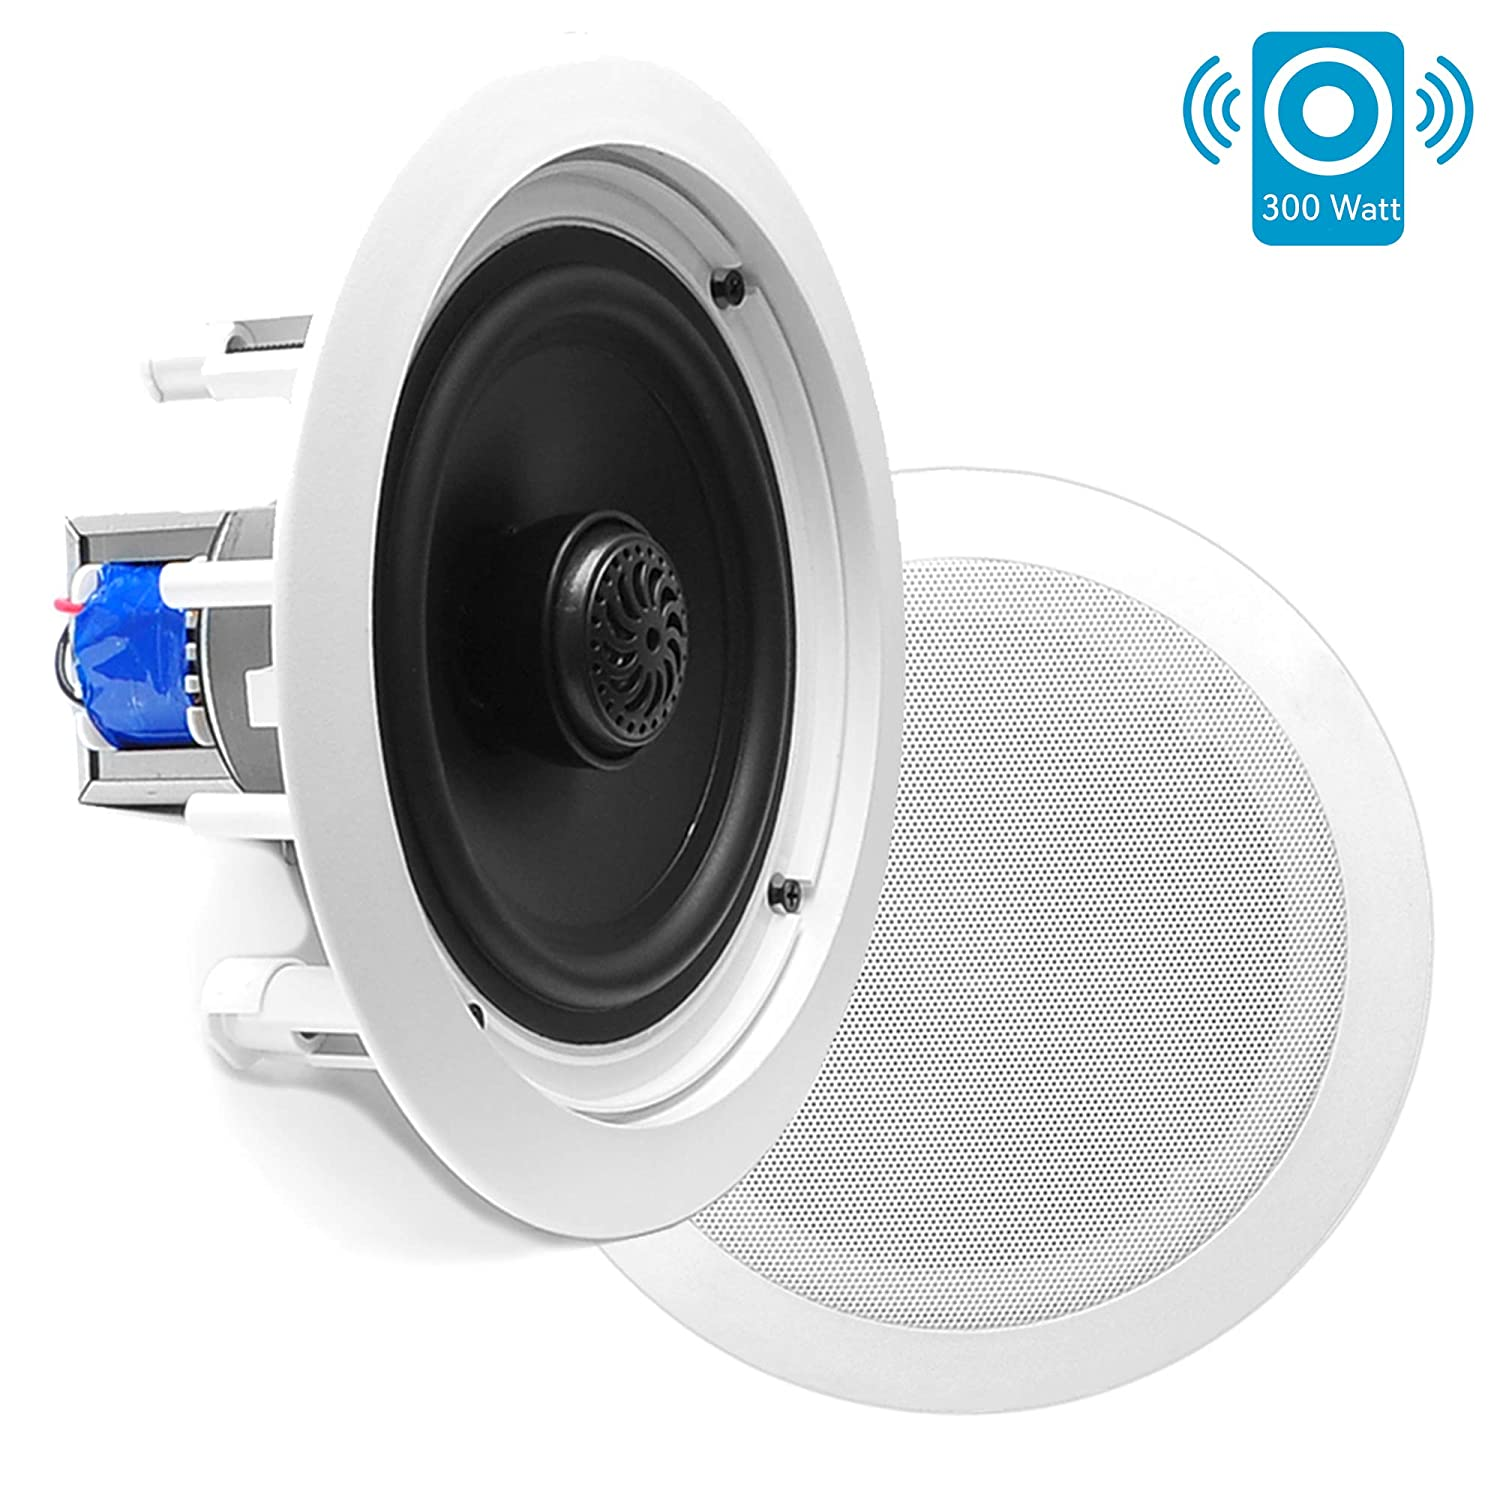 """8"""" Ceiling Wall Mount Speakers - Pair of 2-Way Midbass Woofer Speaker 70v Transformer Directable 1"""" Titanium Dome Tweeter Flush Design w/ 55Hz-22kHz Frequency Response & 300 Watts Peak - Pyle PDIC80T"""